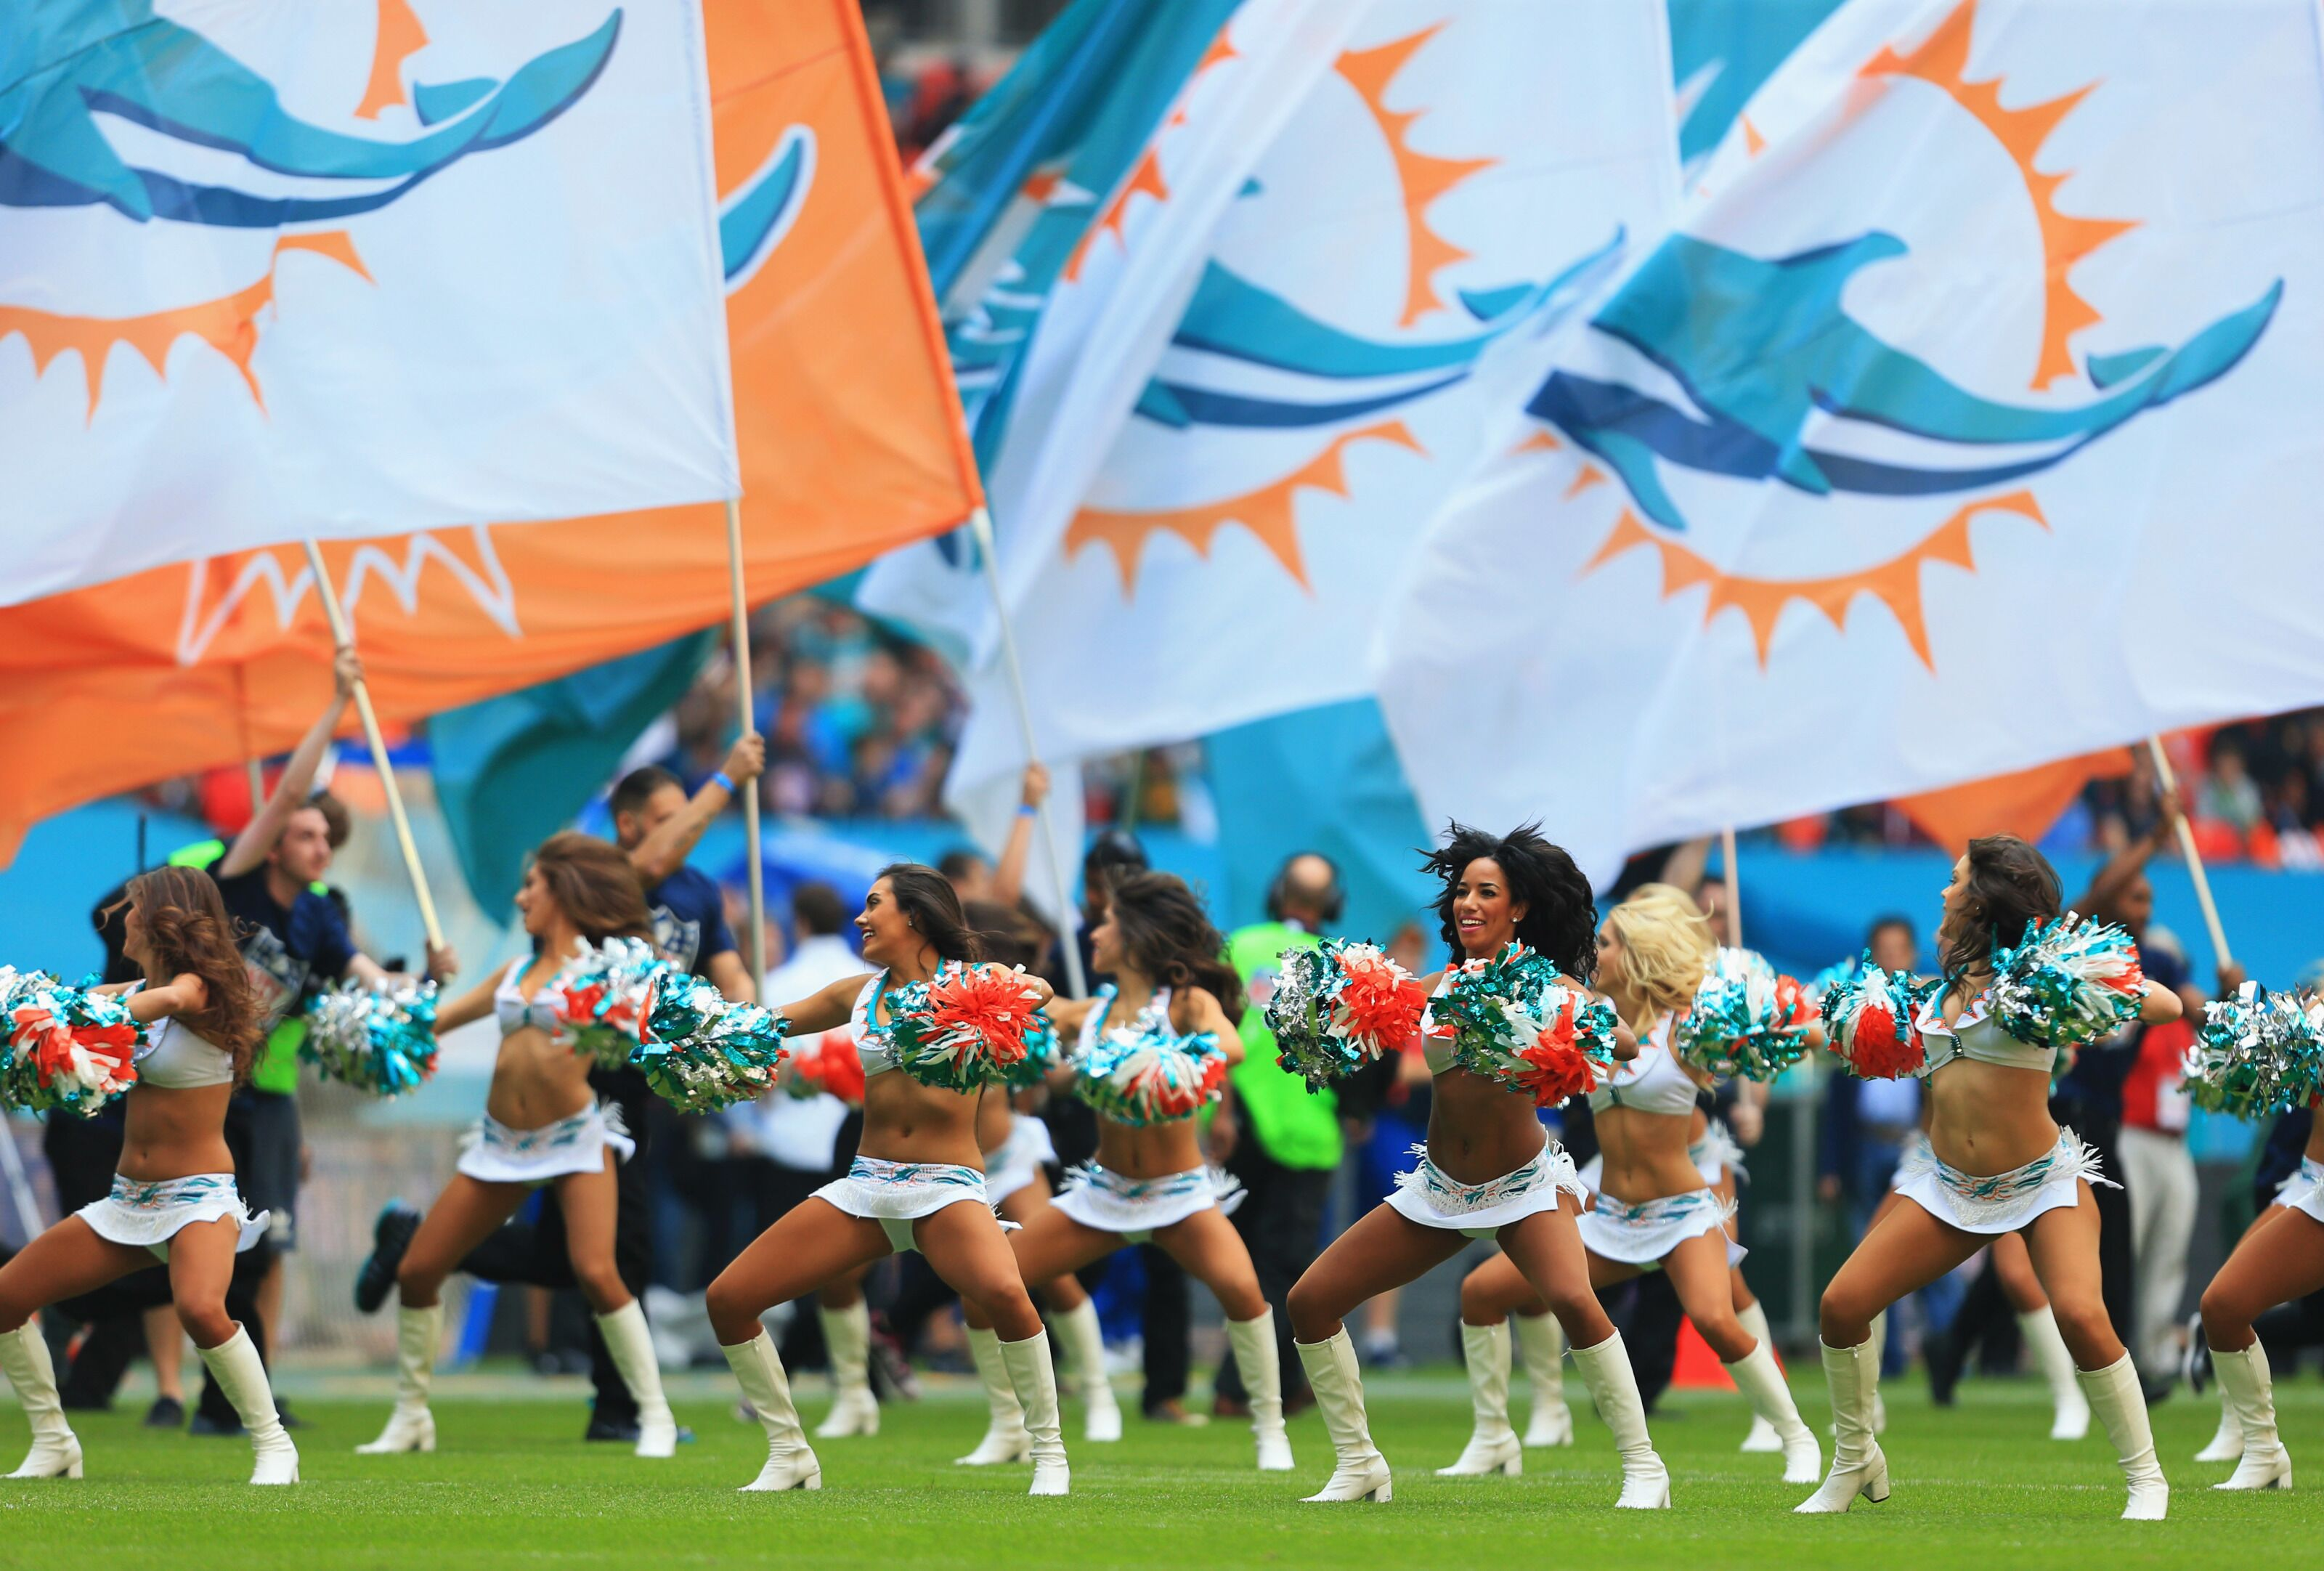 Miami Dolphins Cancer Challenge announce over $5 million raised